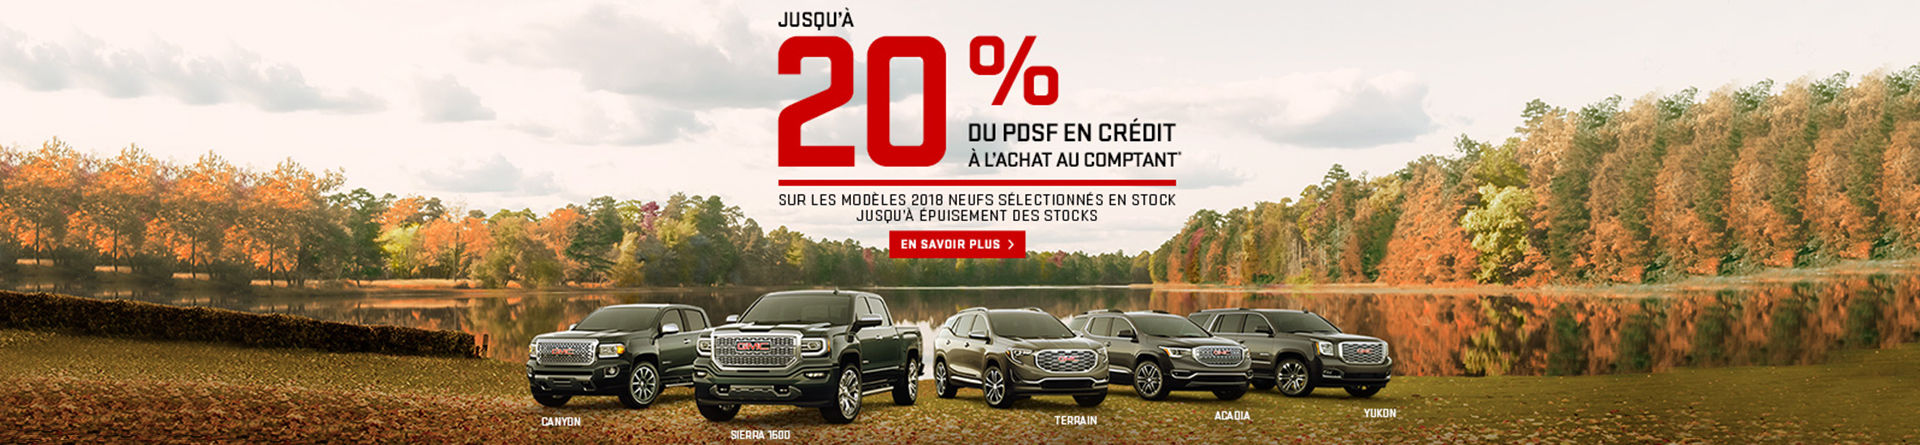 Promotion GMC, repentigny